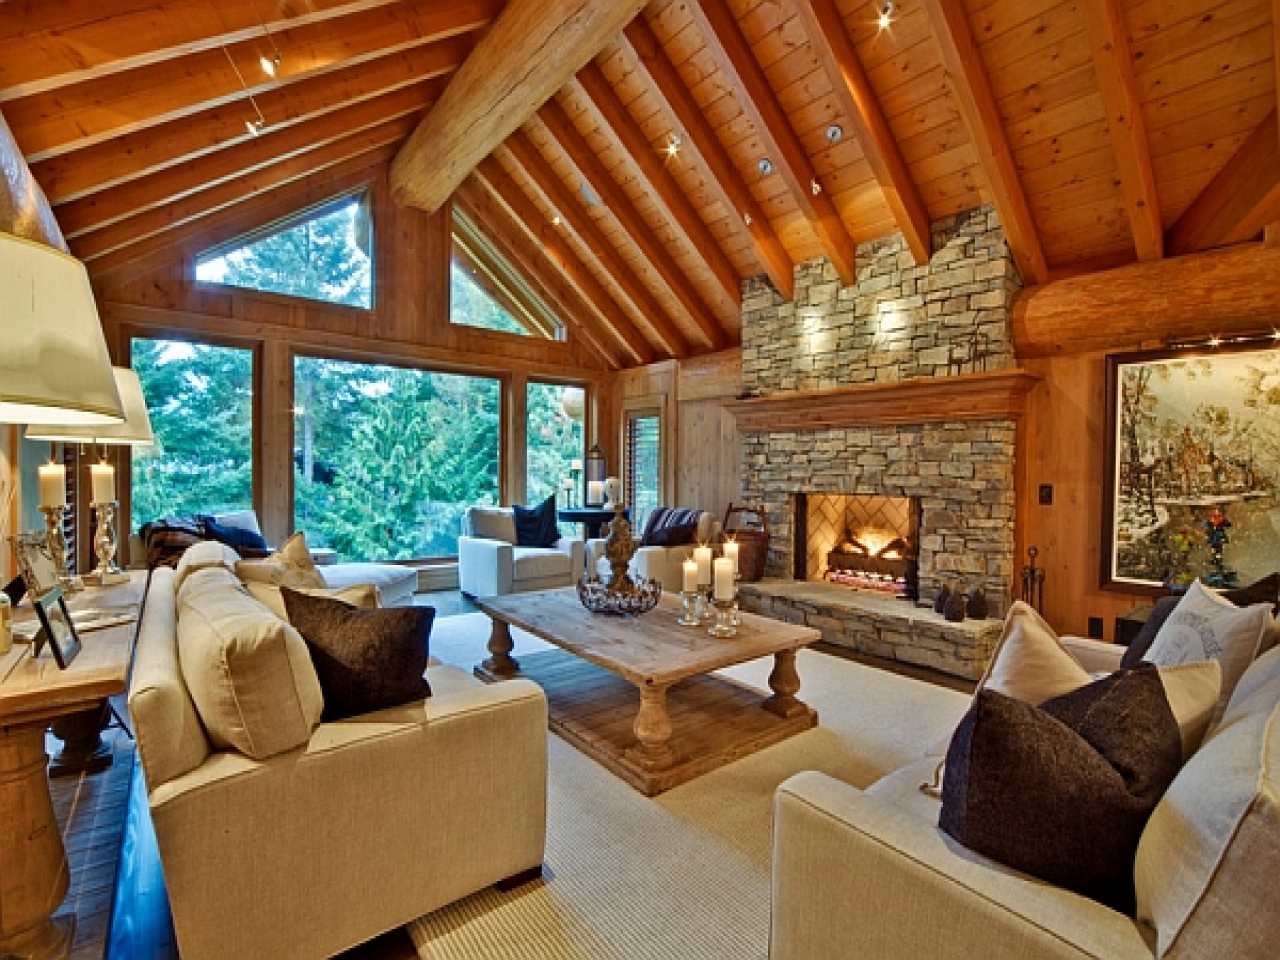 Modern Log Cabin Interior Design Luxury Log Cabin Interior